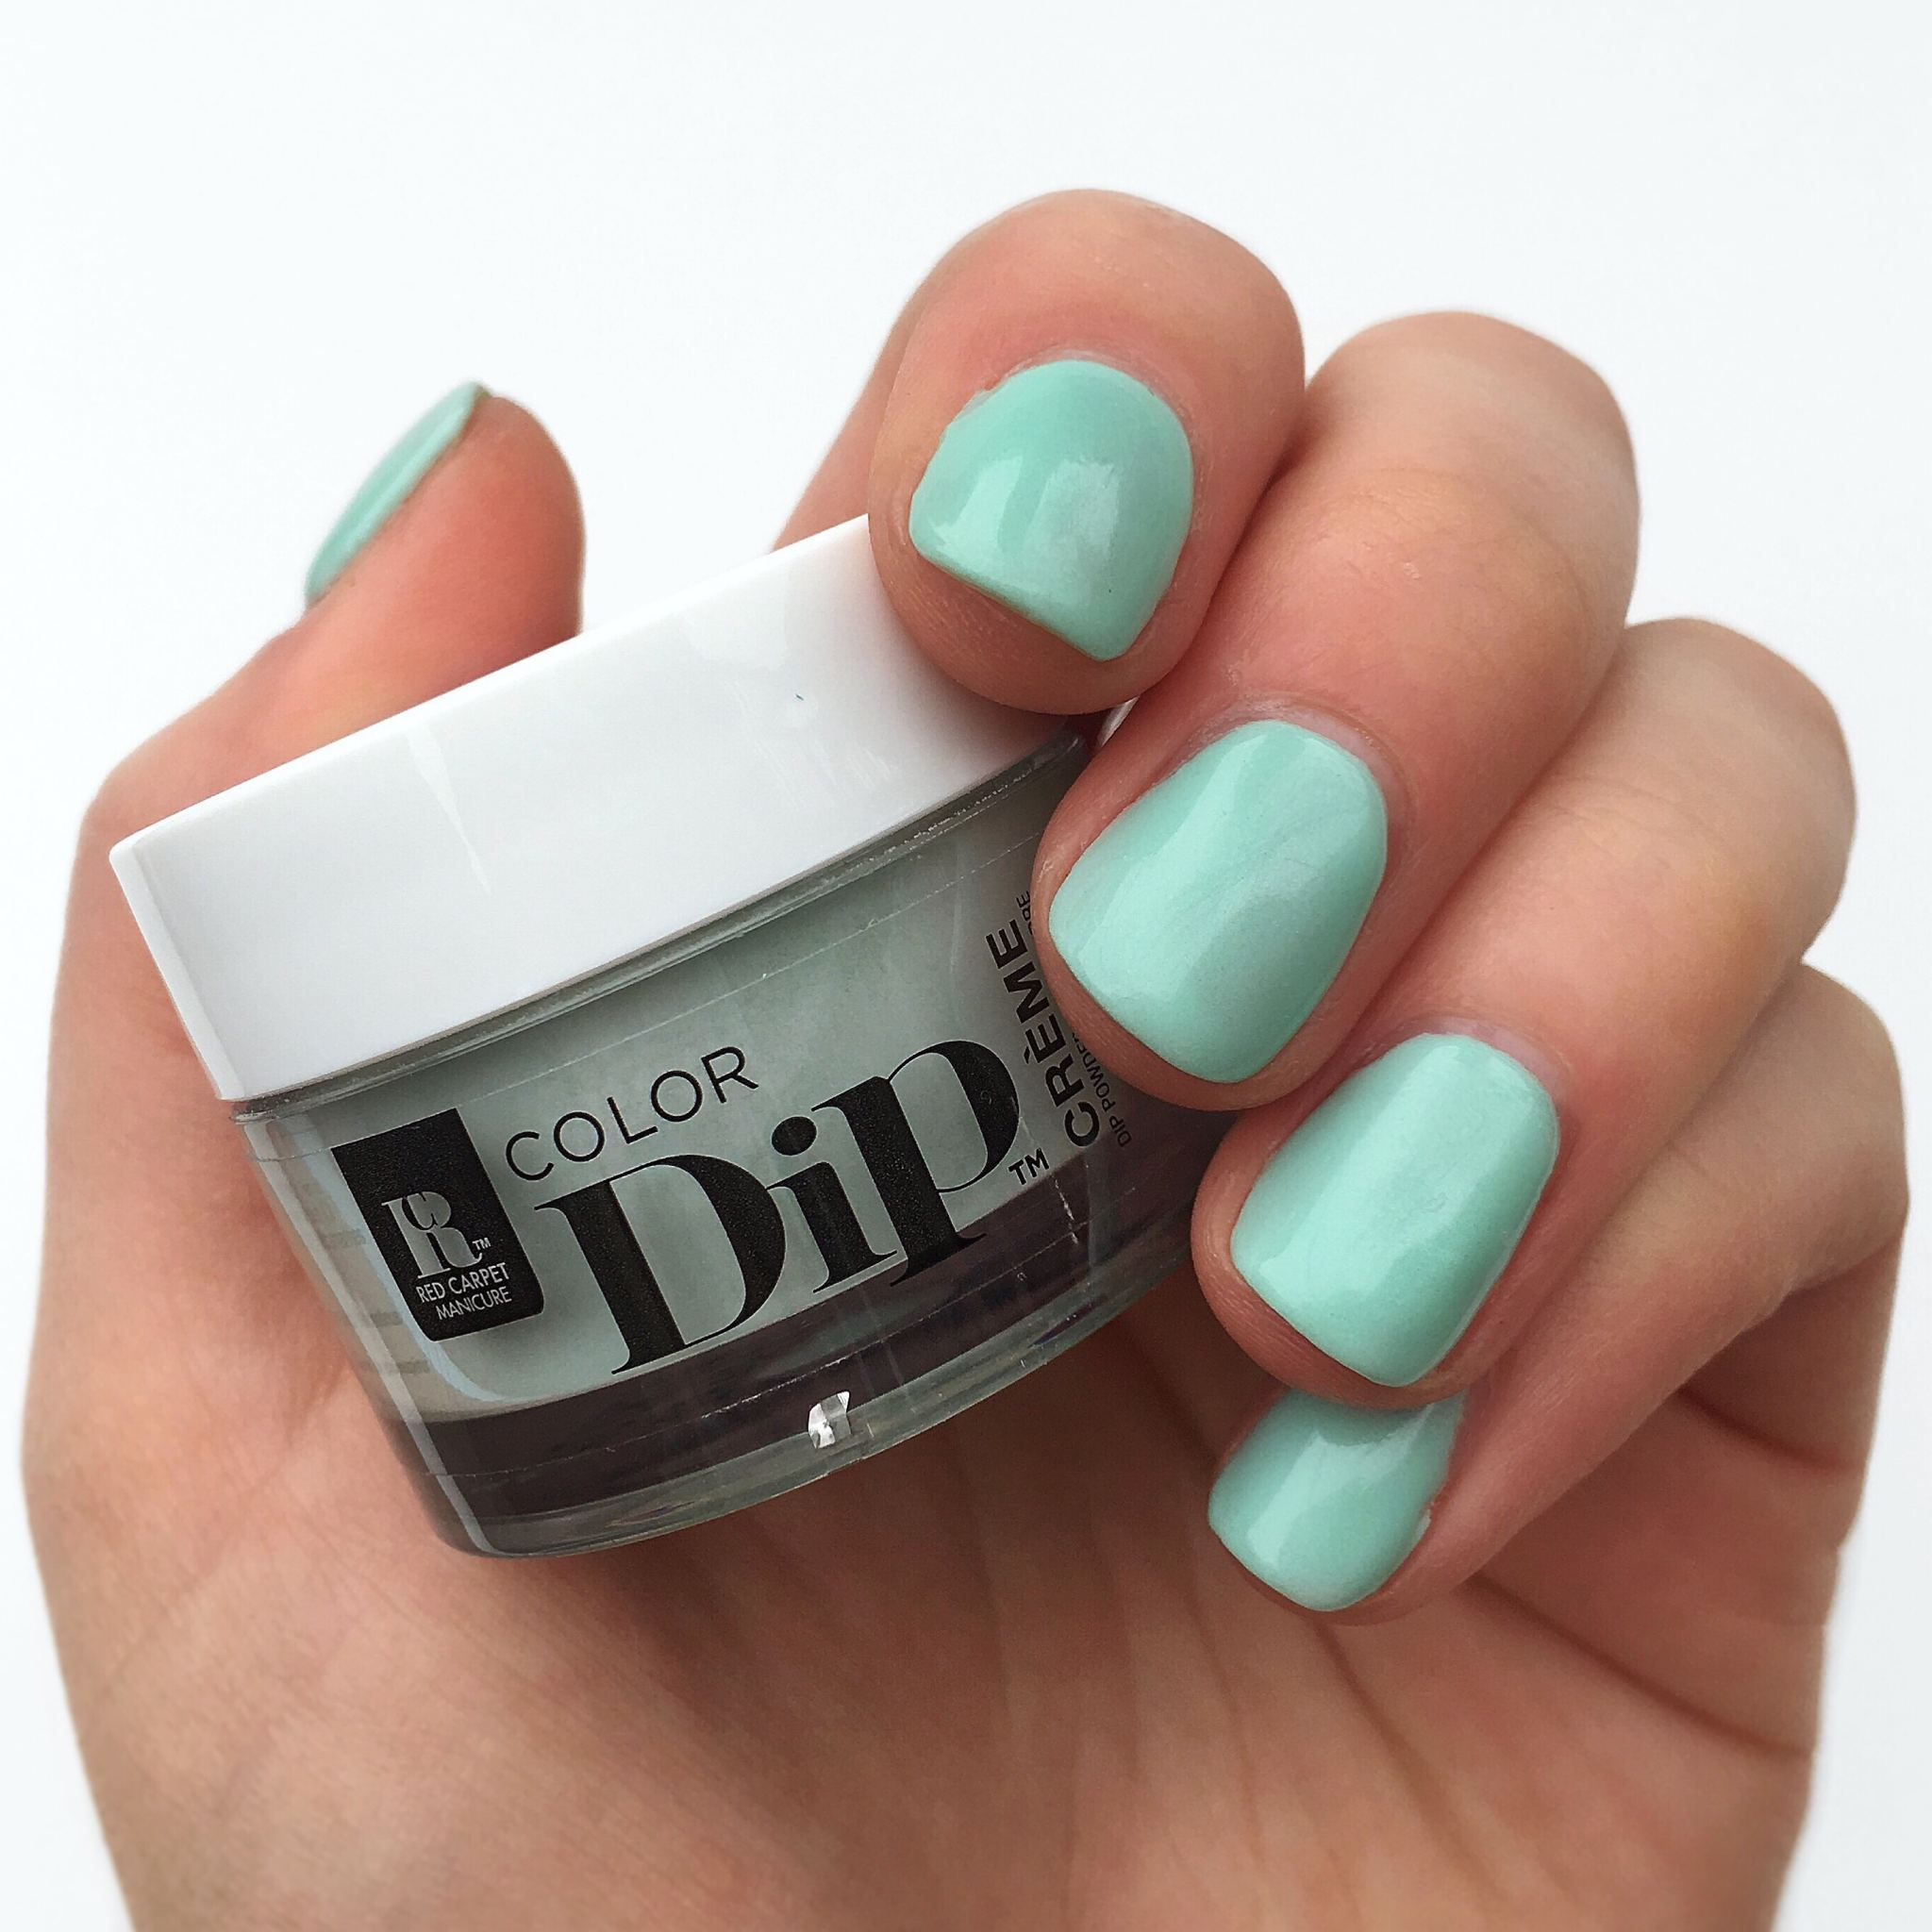 red carpet manicure dip review